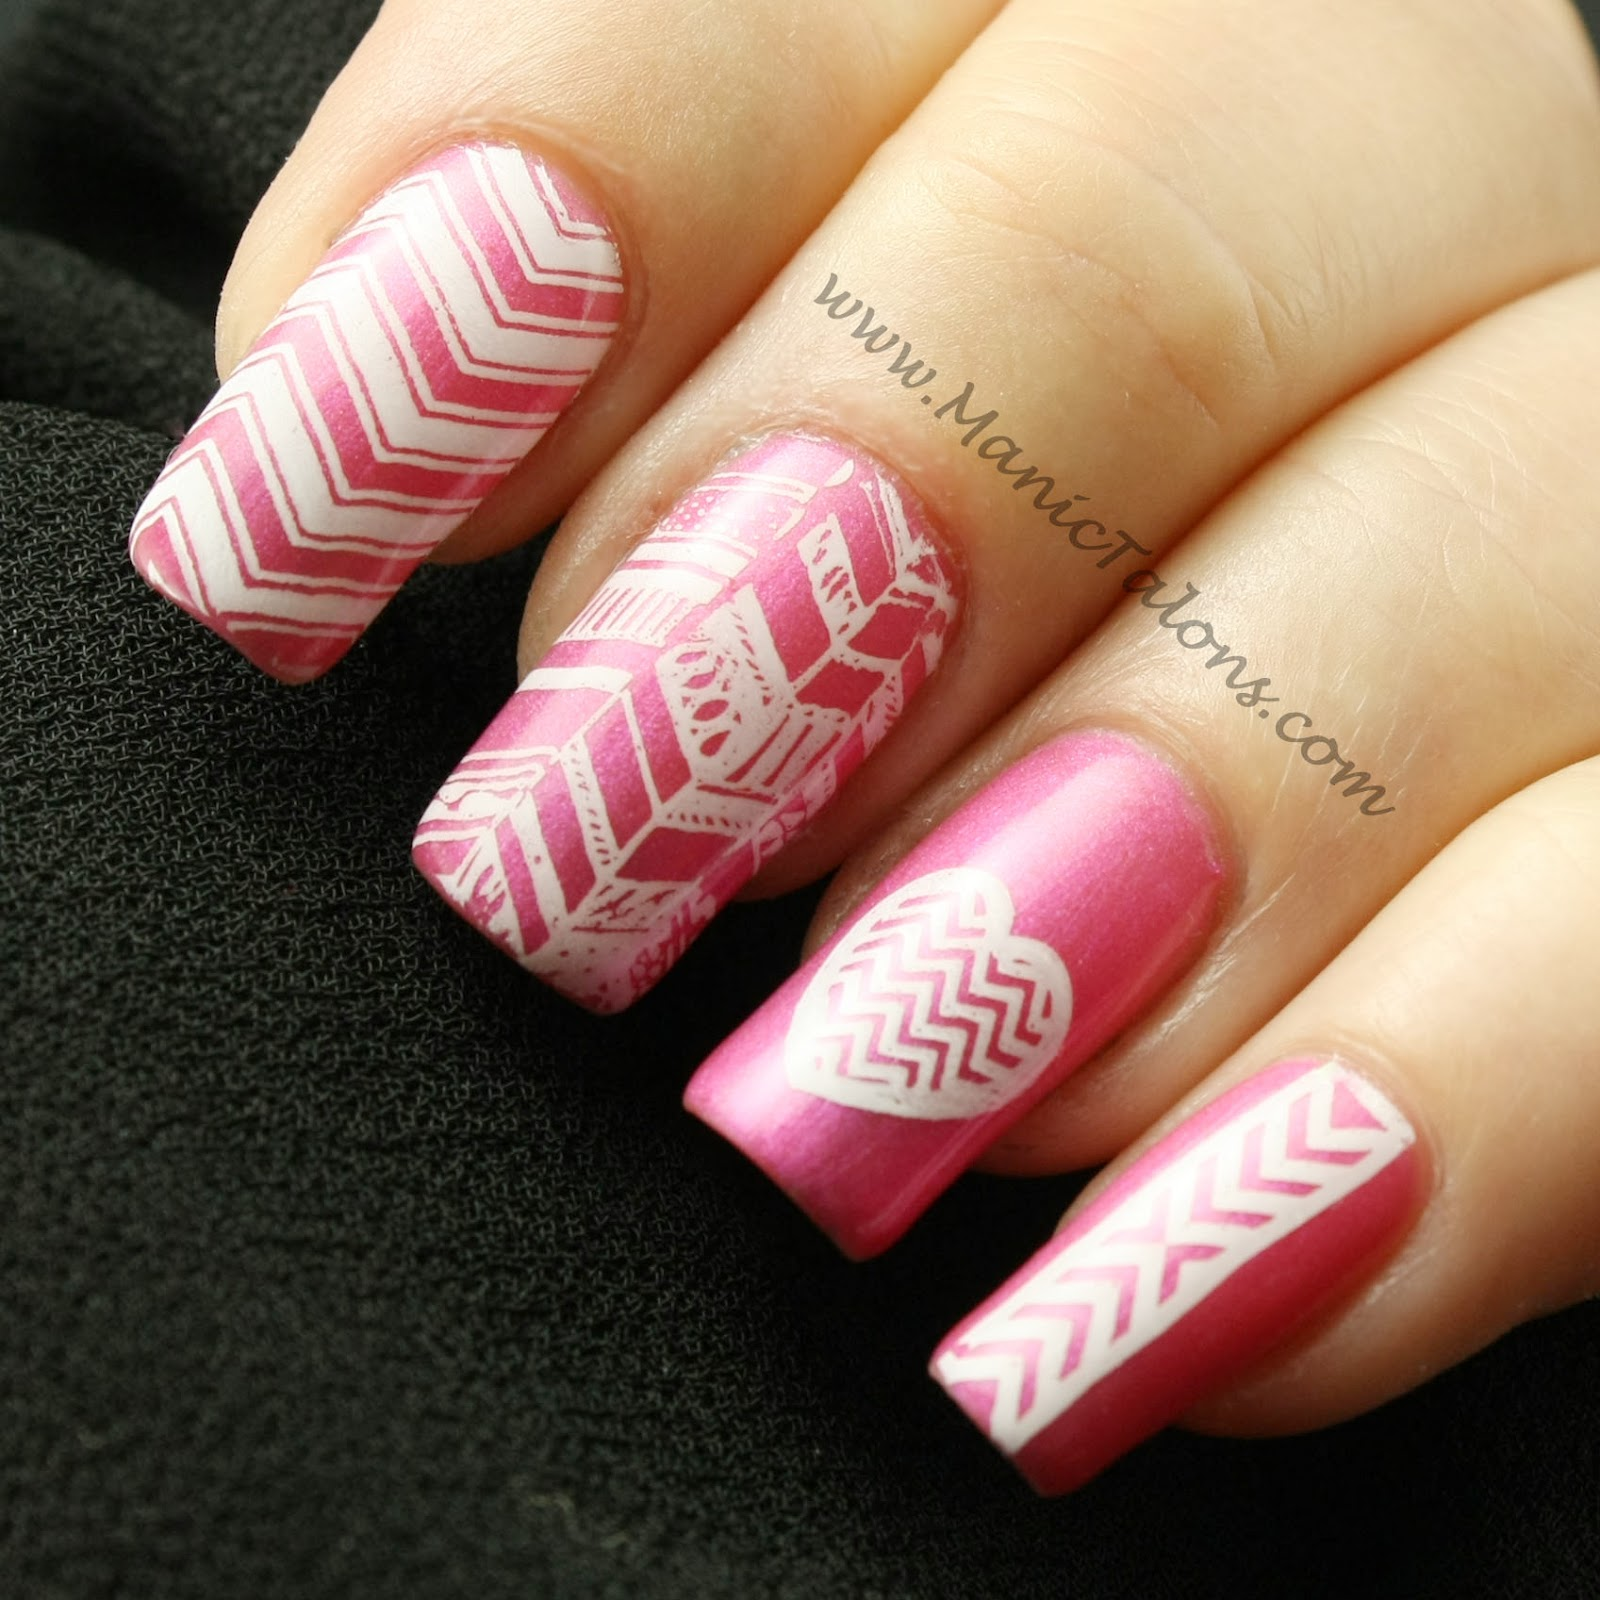 Manic Talons Nail Design: Messy Manision Stamping Plate Review plus ...